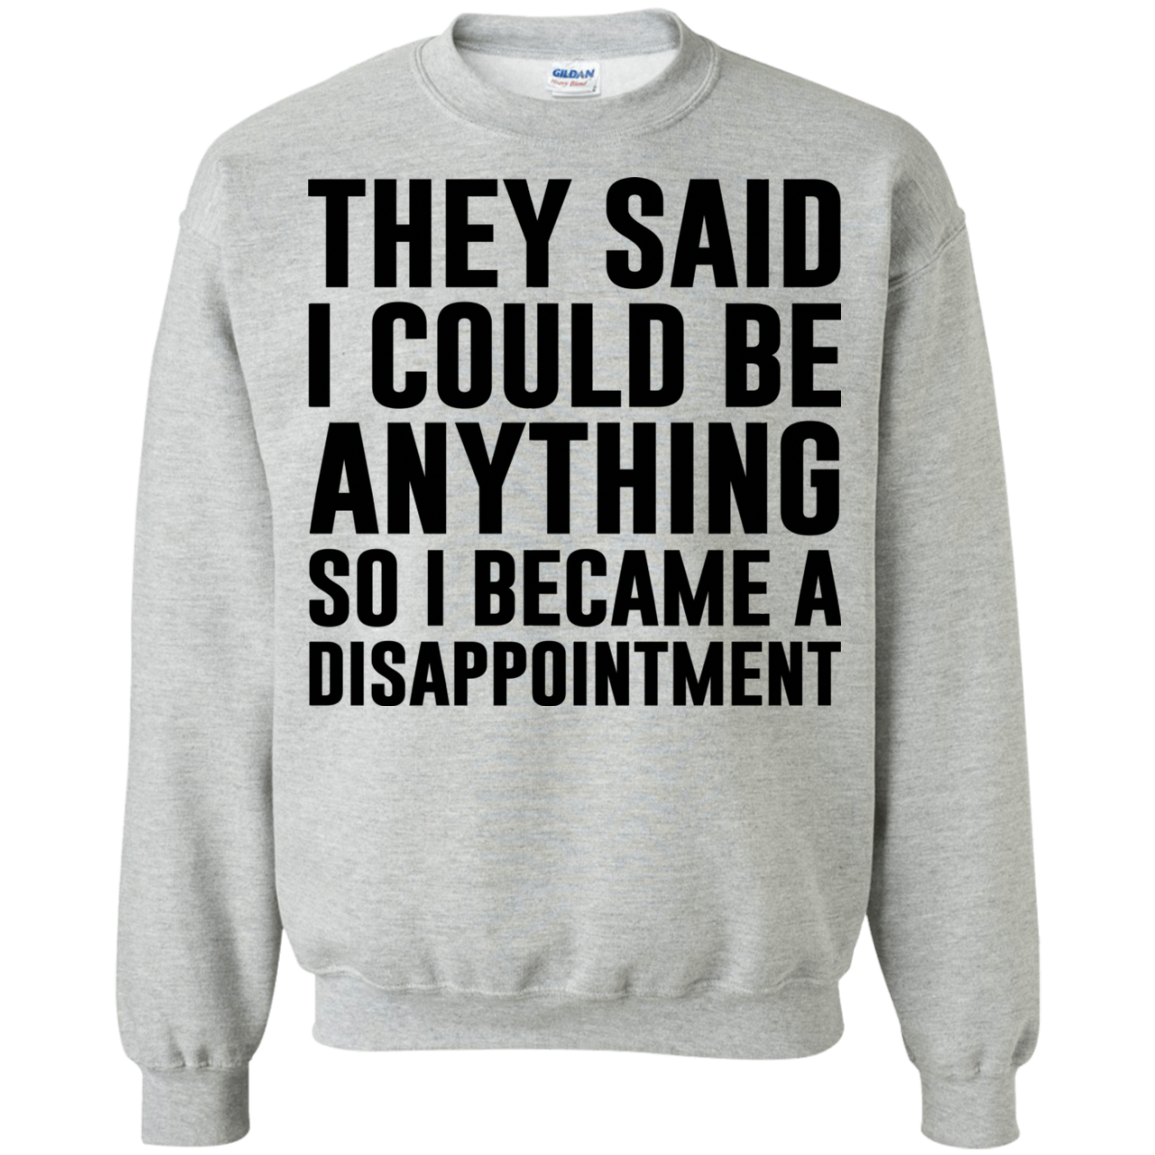 They Said I Could Be Anything So I Became A Disappointment T Shirts Hoodies Sweatshirts Available Fu Funny Outfits Funny Shirts T Shirts With Sayings [ 1155 x 1155 Pixel ]